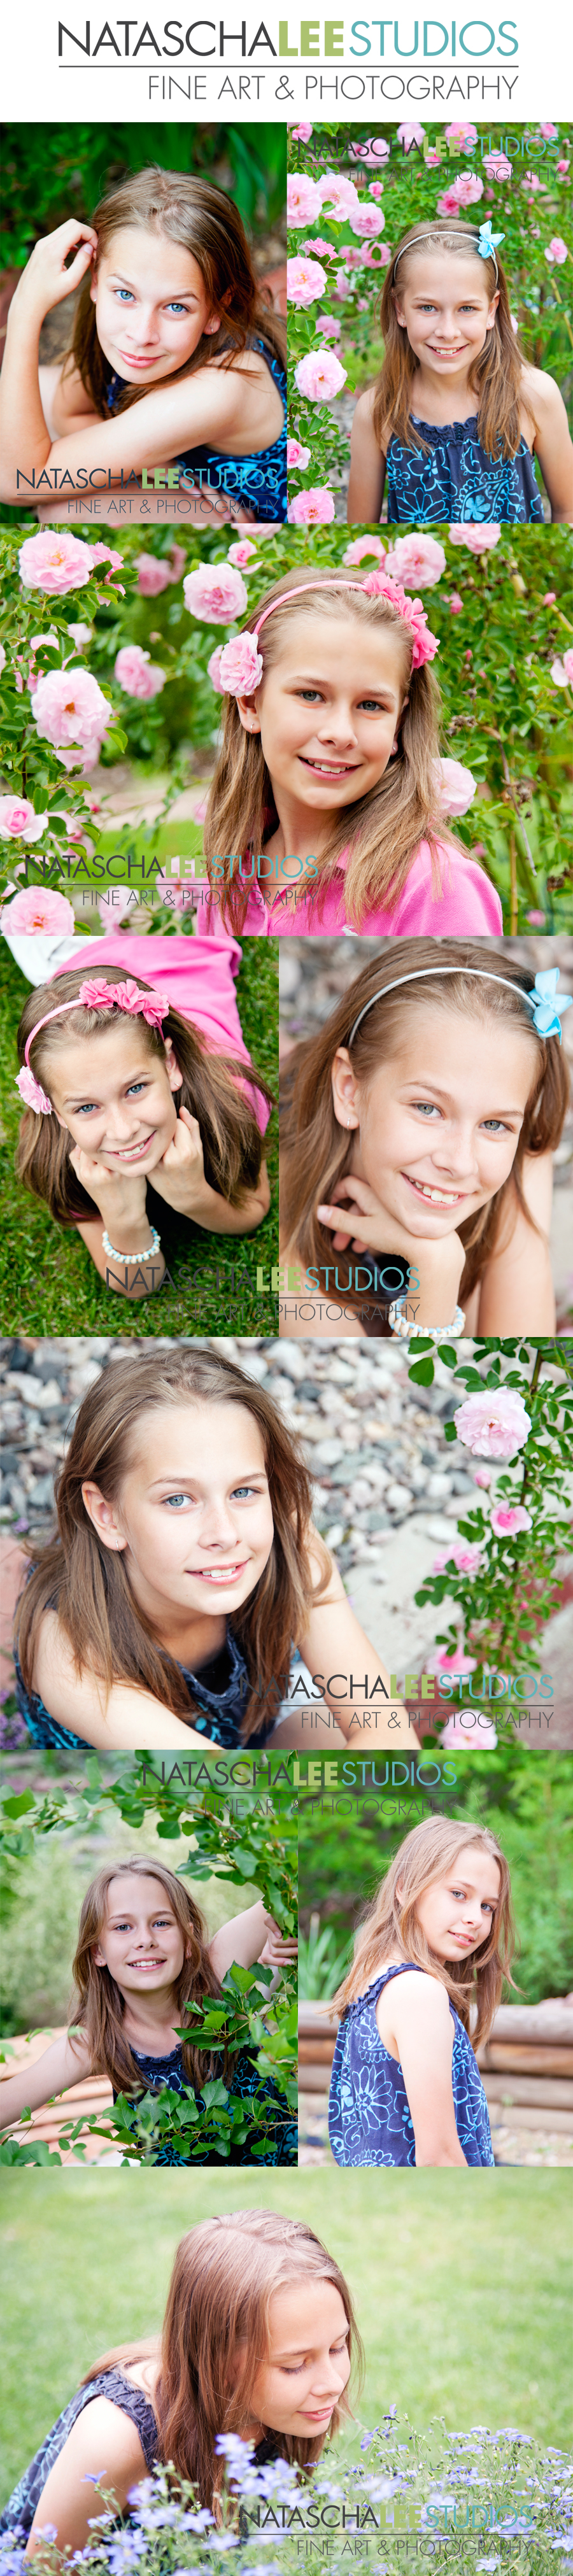 Outdoor Lovely Spring Flower Photo Session for Girl by Broomfield Colorado Baby Photography Natascha Lee Studios